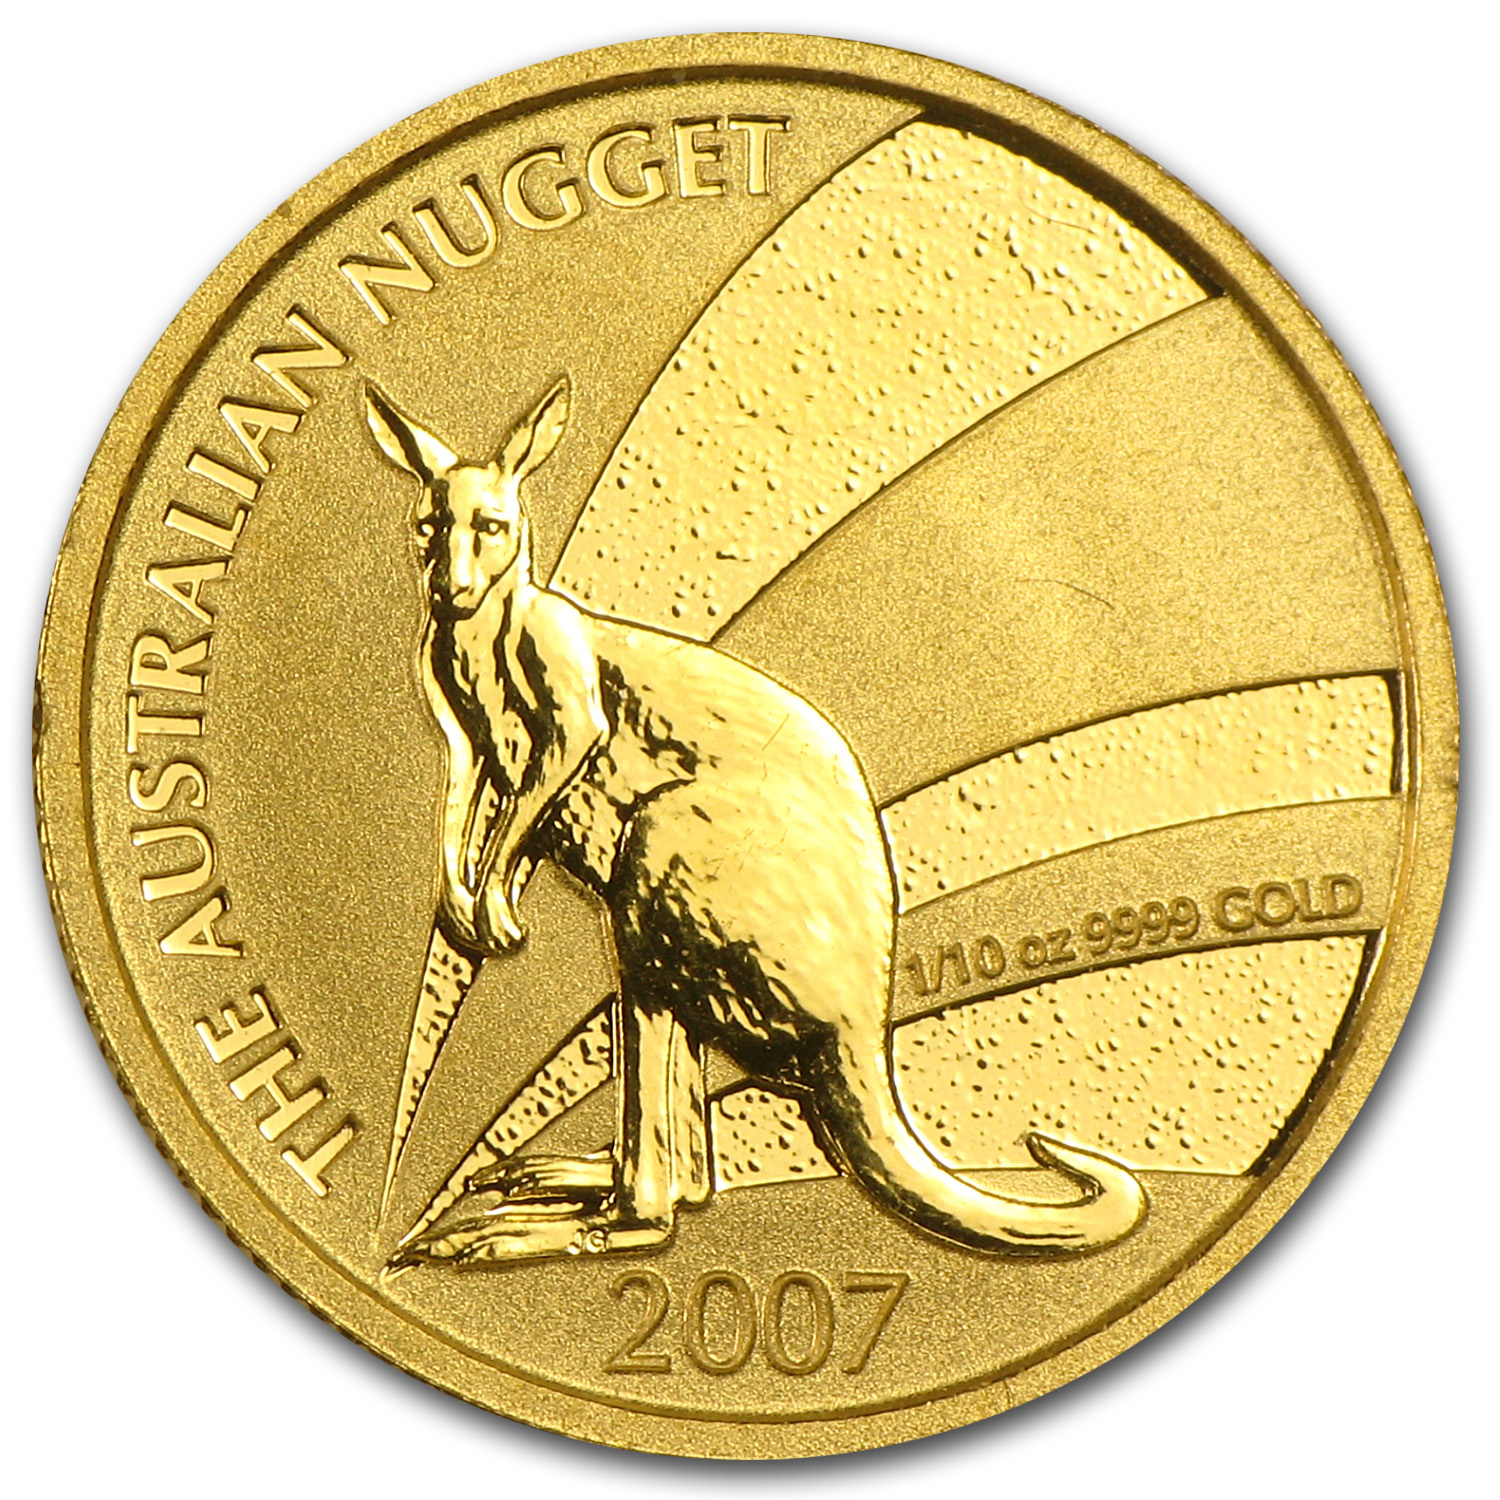 2007 Australia 1/10 oz Gold Nugget